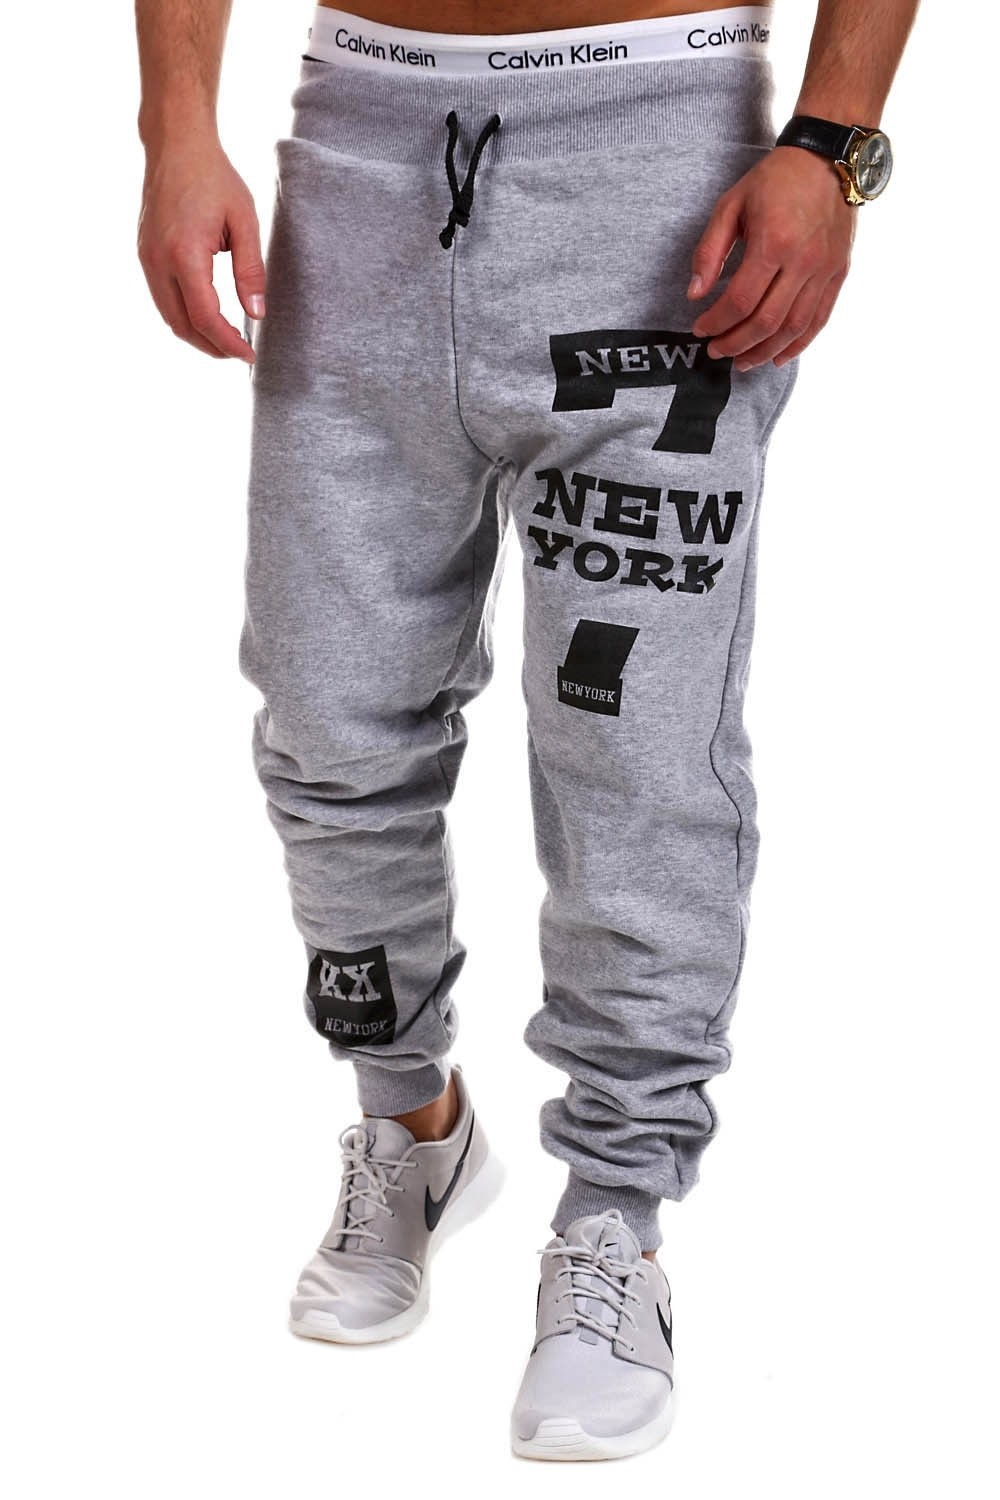 214119d7a0c Mens Joggers 2018 Brand Male Trousers Men Pants Casual Pants Sweatpants  Jogger Black Large Size 4XL light grey l   Kilimall Kenya